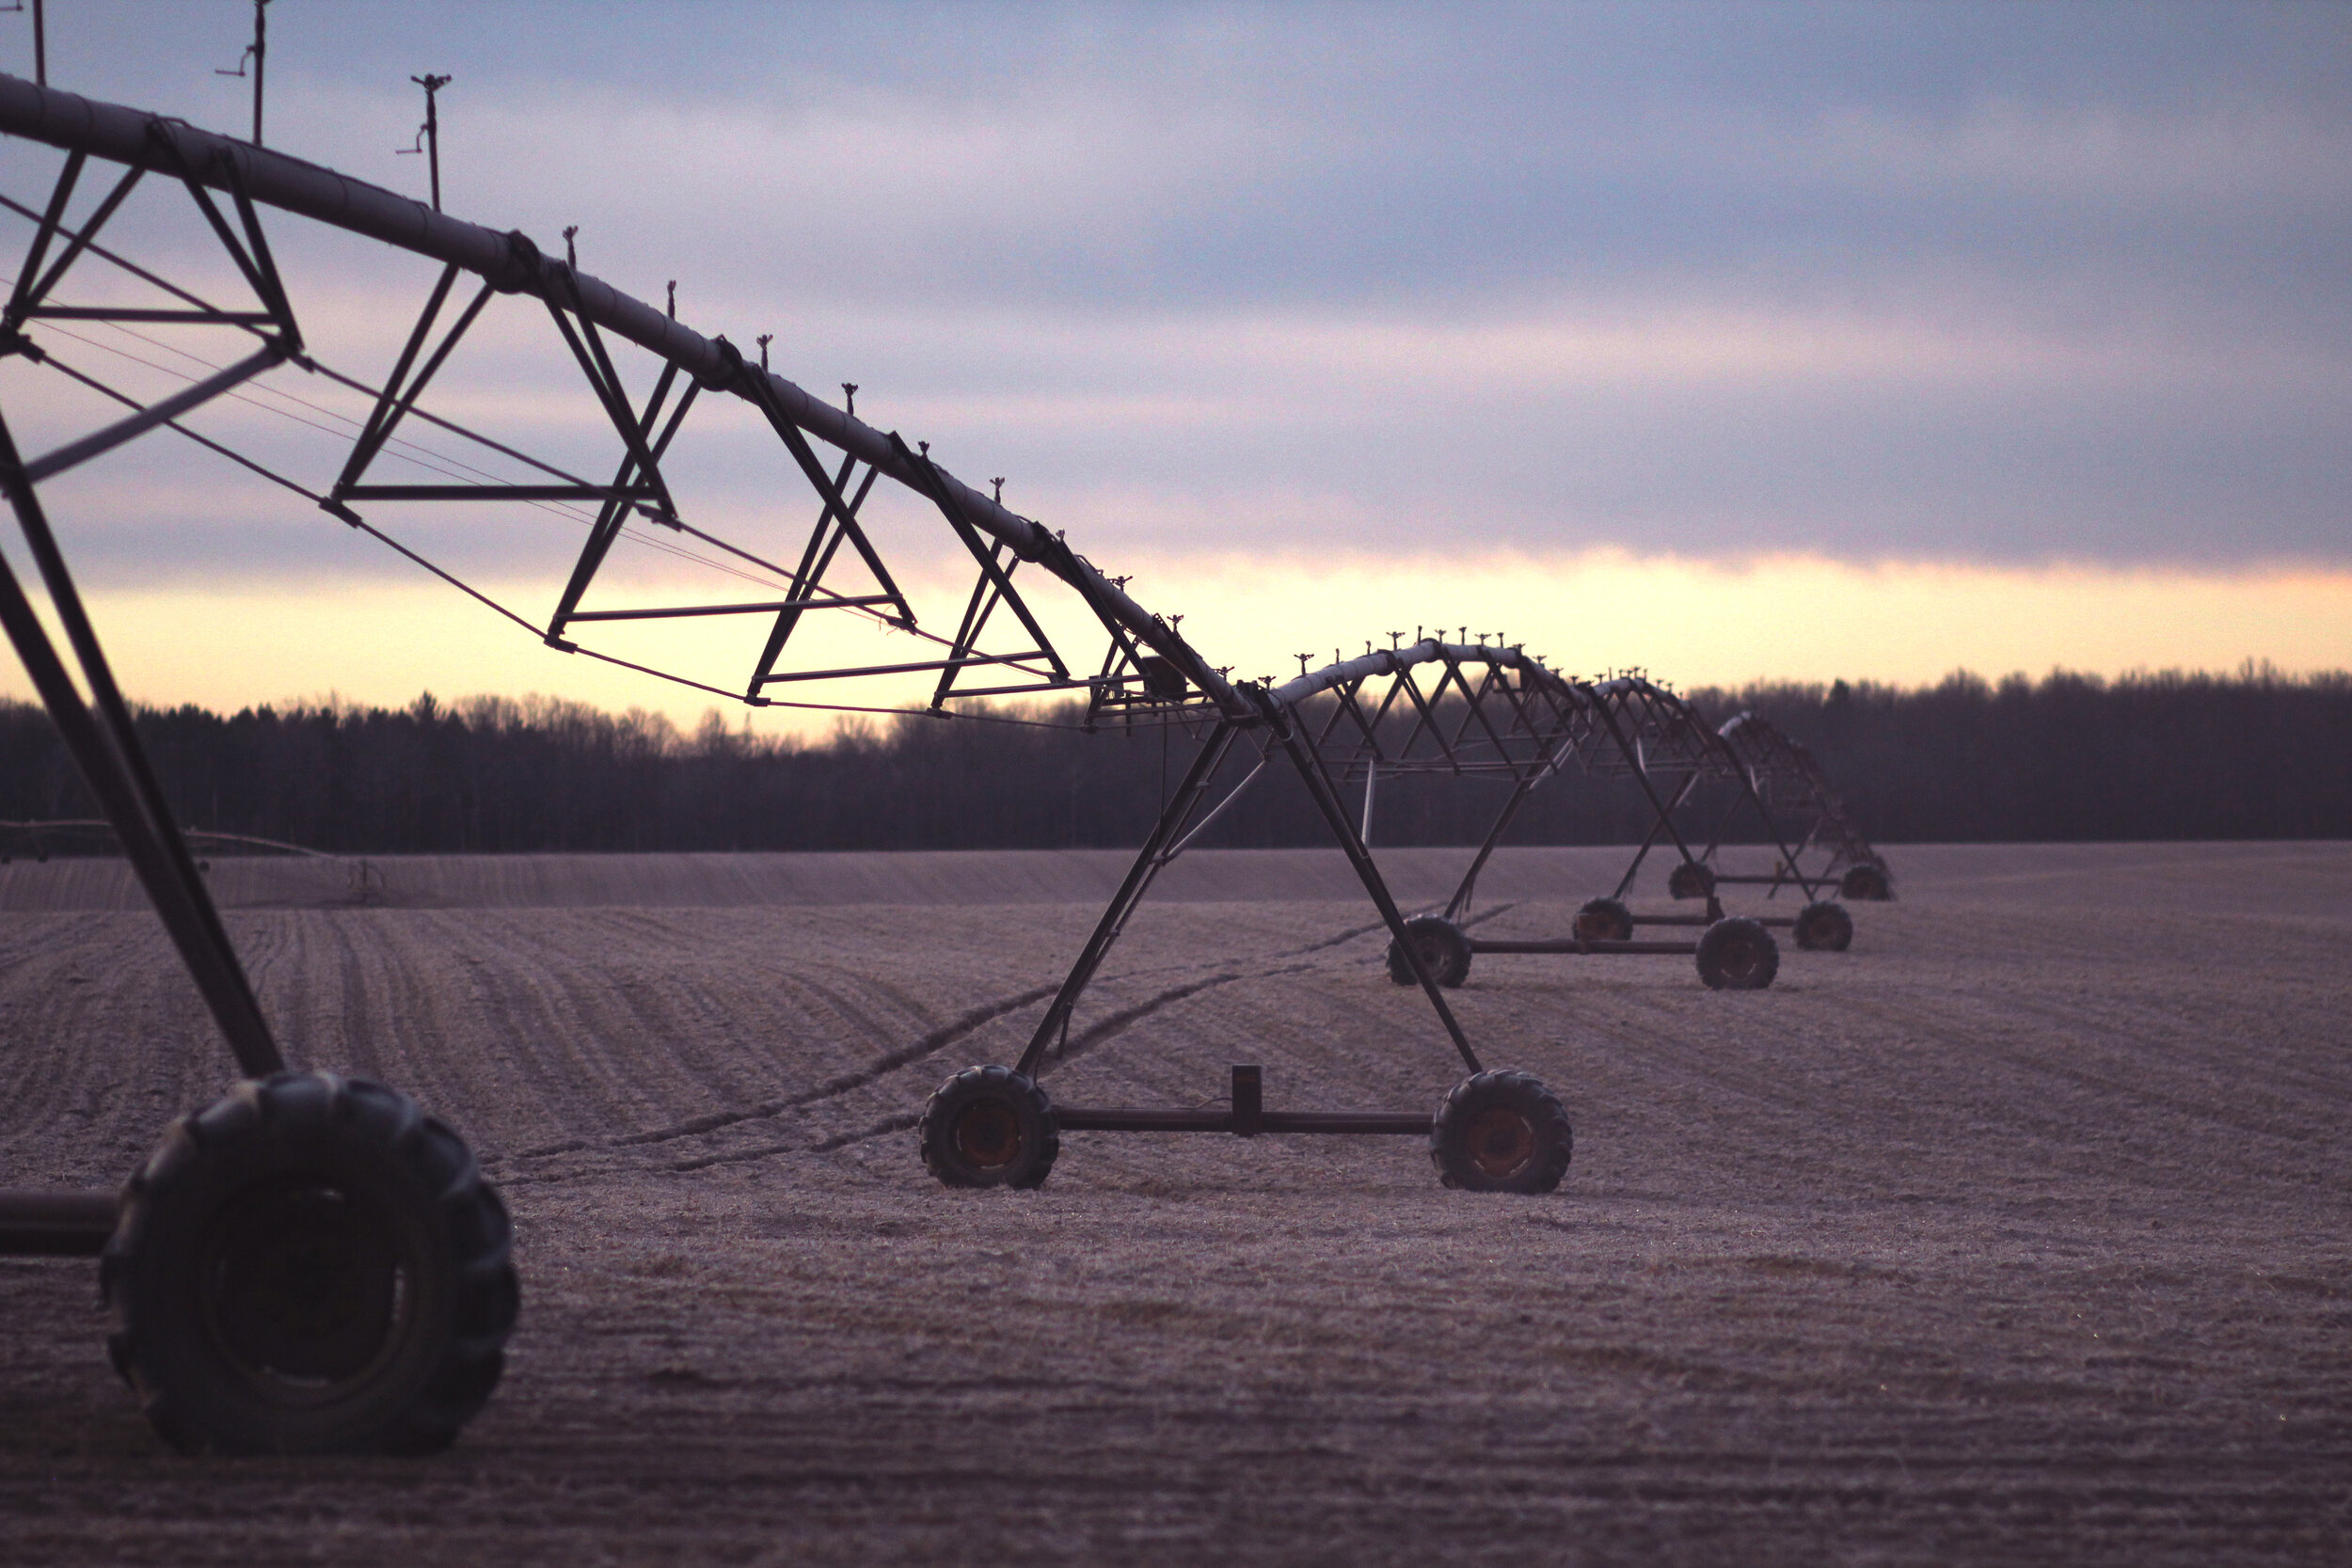 Agricultural uses typically demand significant water